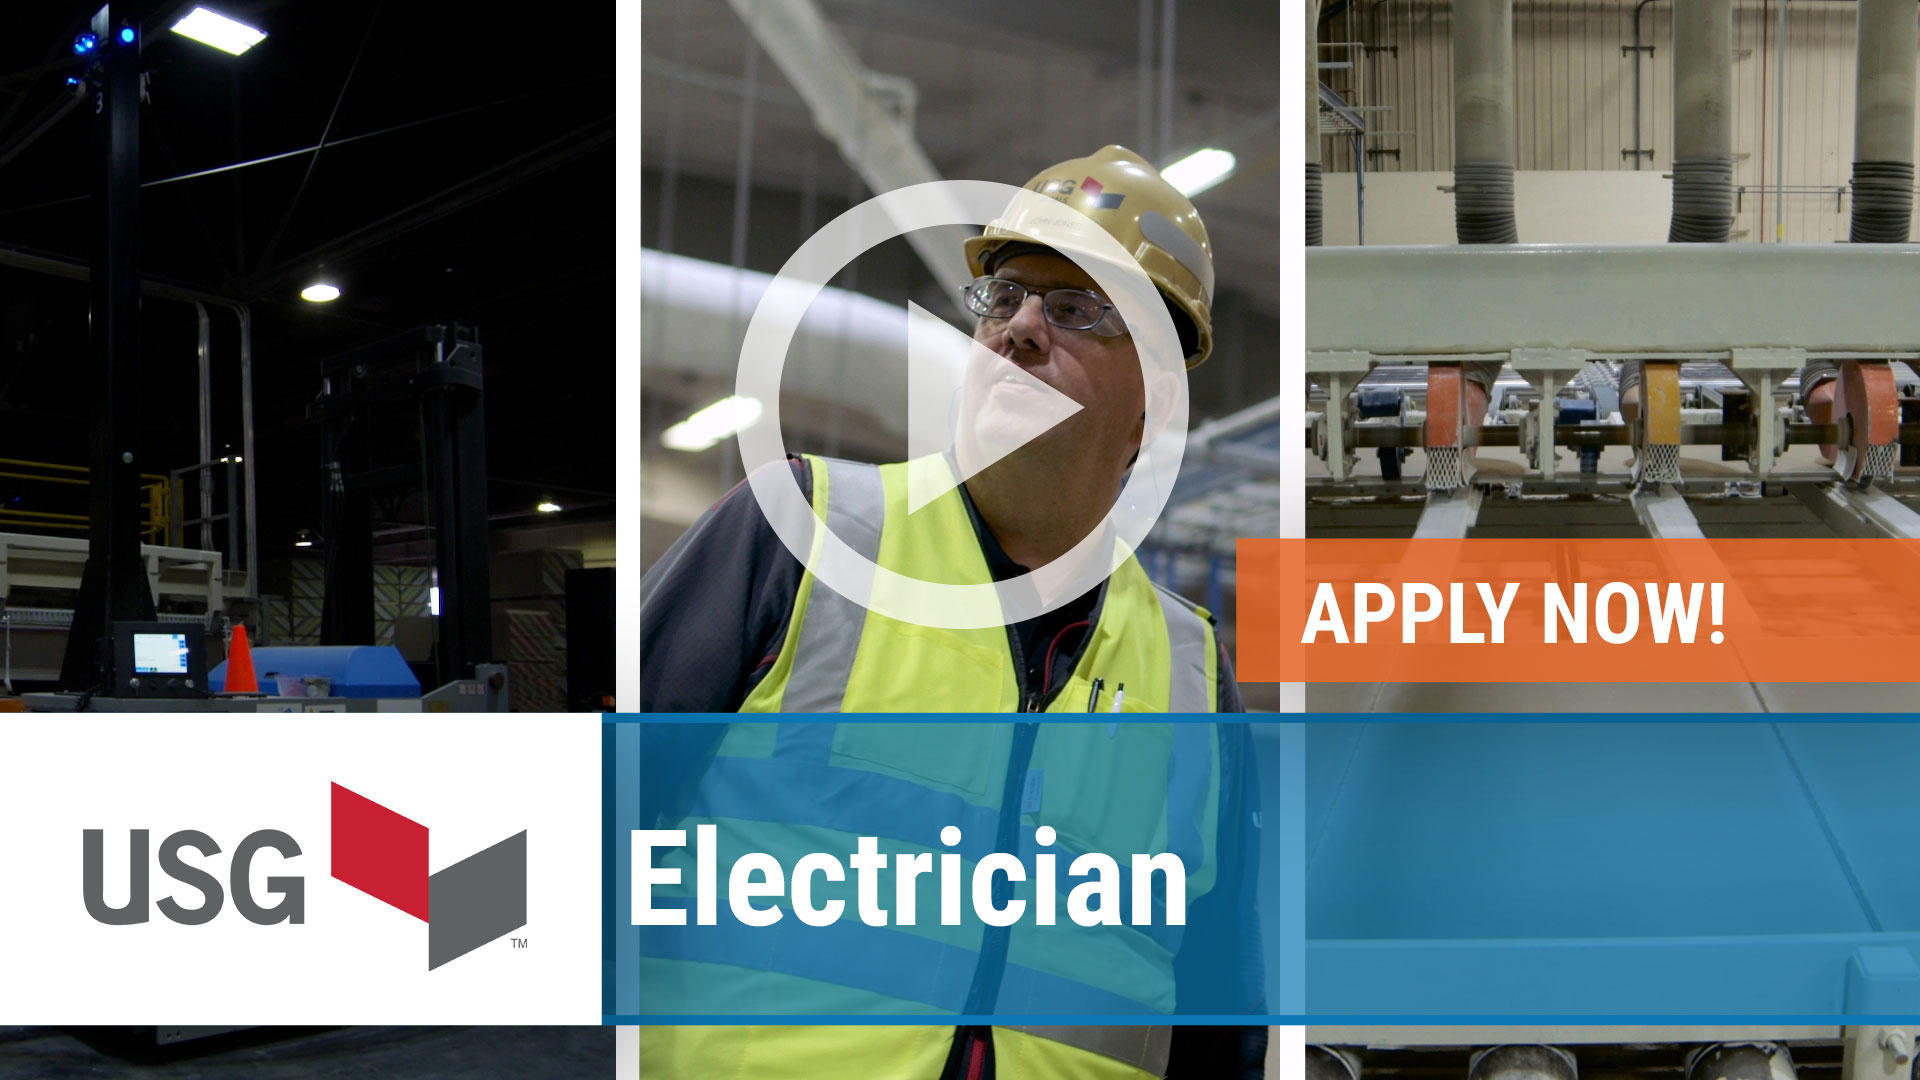 Watch our careers video for available job opening Electrician in Bridgeport, AL, USA